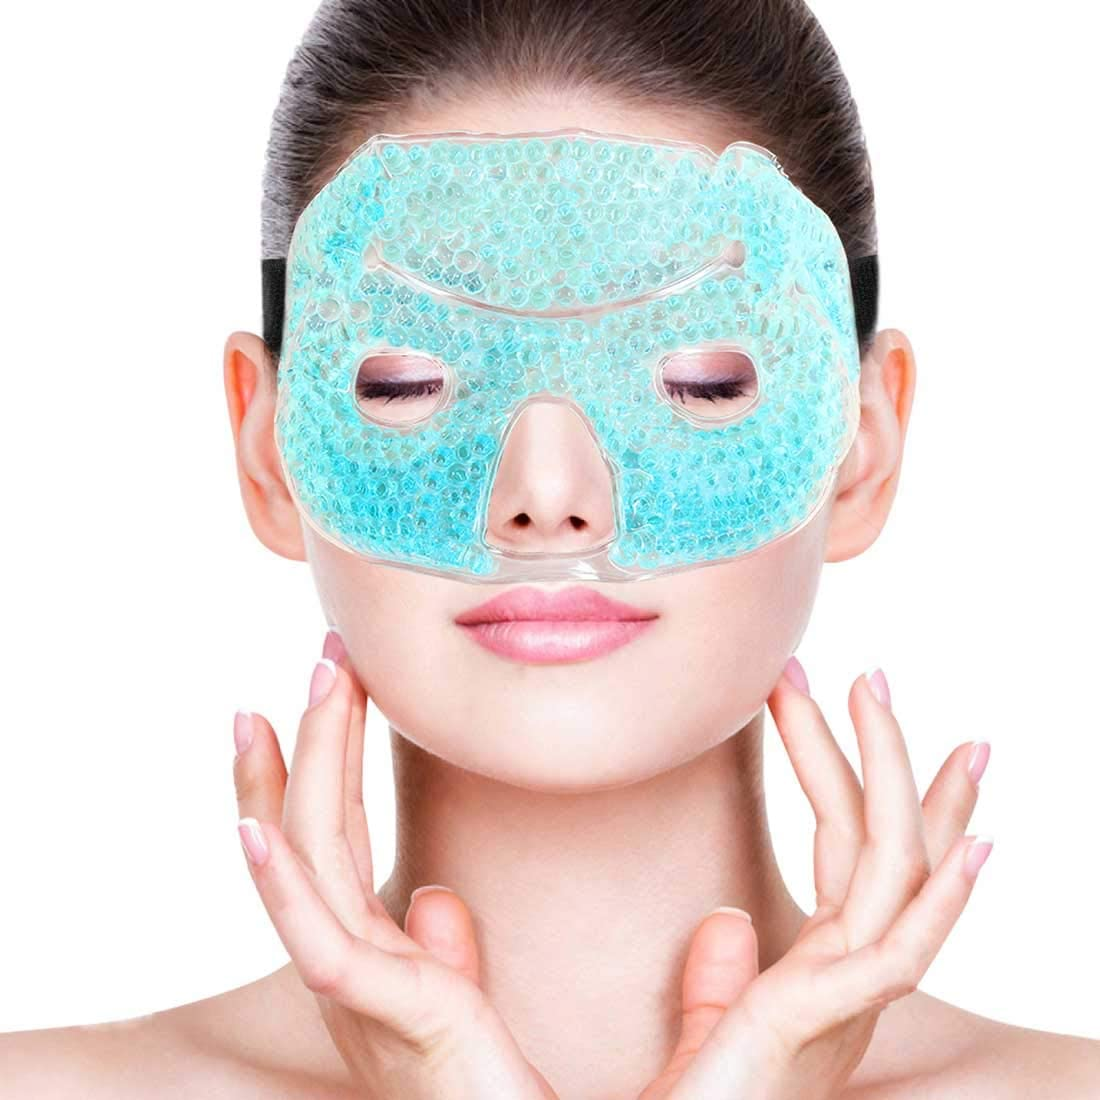 Cold Ice Face Mask Pack - Eye Cooling Gel Bead Mask for Puffy Eyes, Sinuses, Migraine Headache Relief, Dark Circles, Dry Eye - Adjustable, Reusable